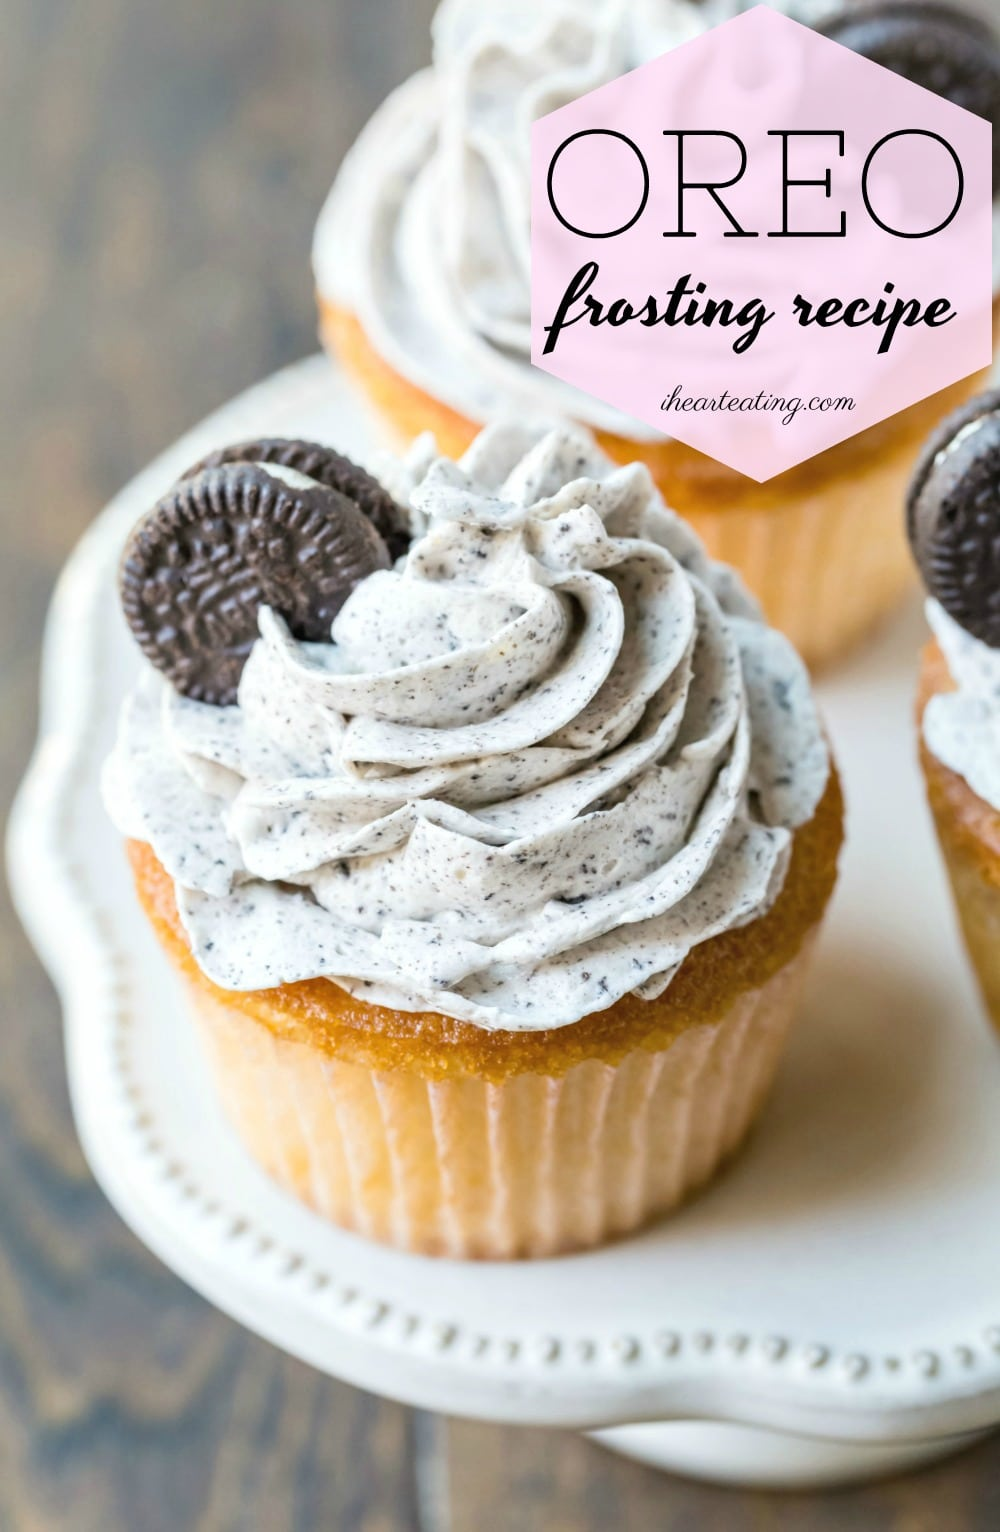 Light and airy OREO frosting recipe is so good on chocolate or vanilla cupcakes! 